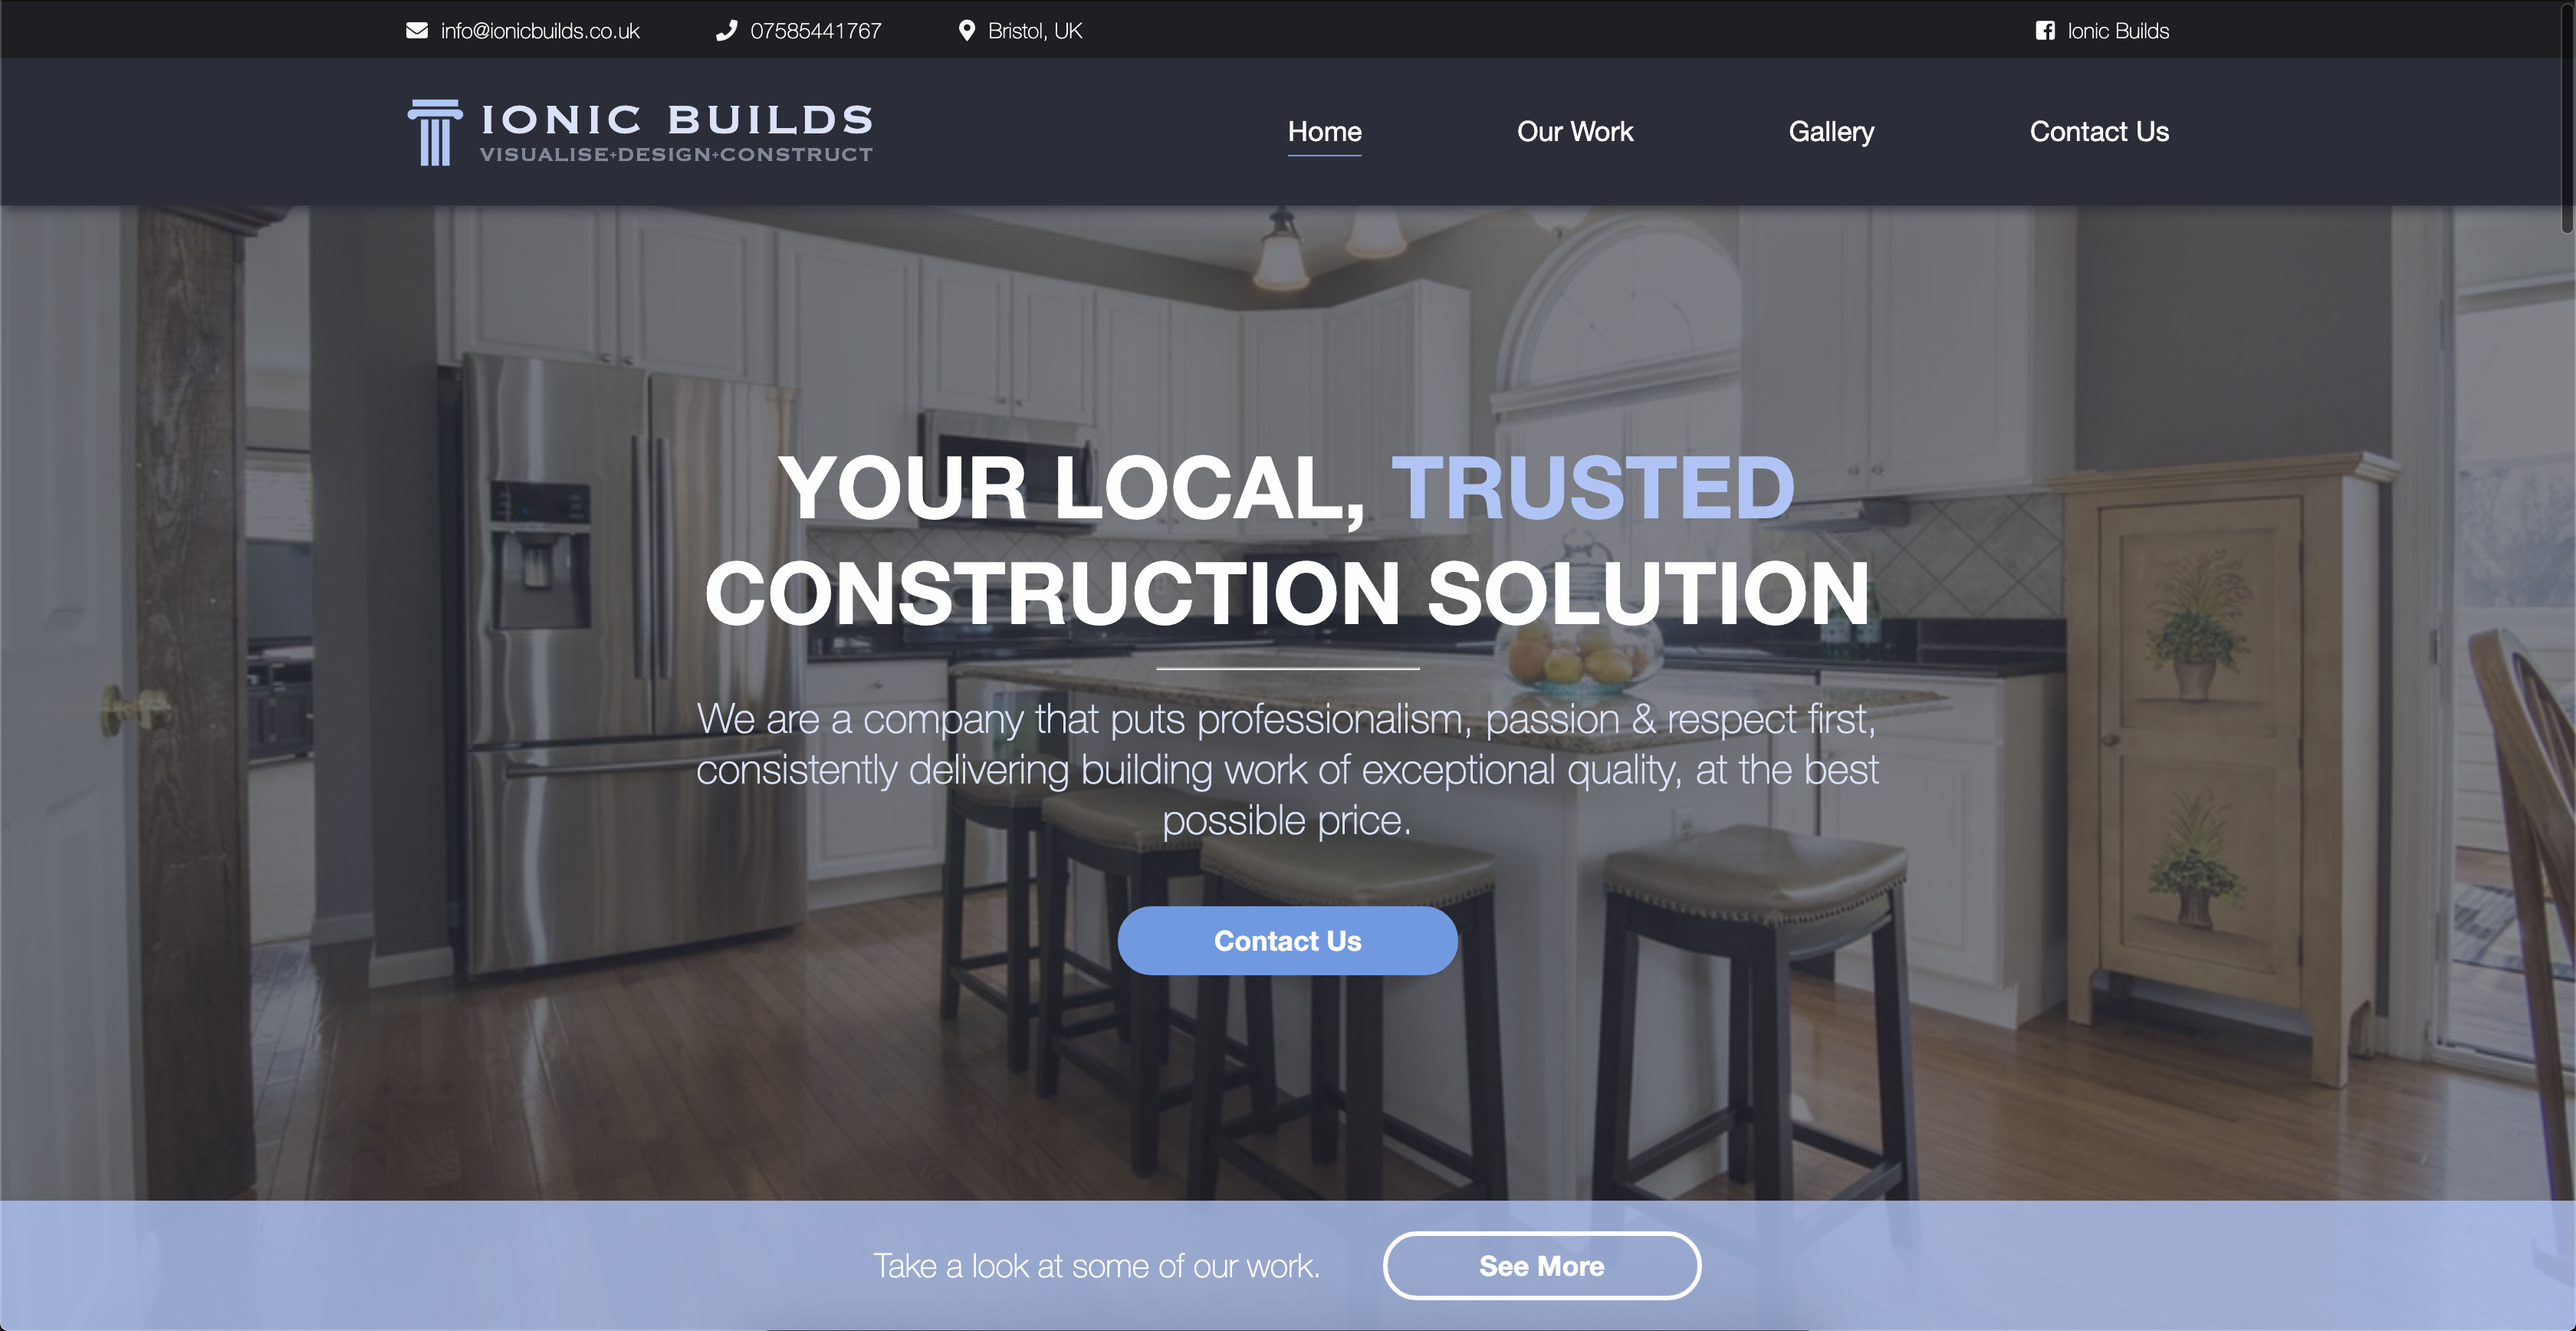 Home page of www.ionicbuilds.co.uk